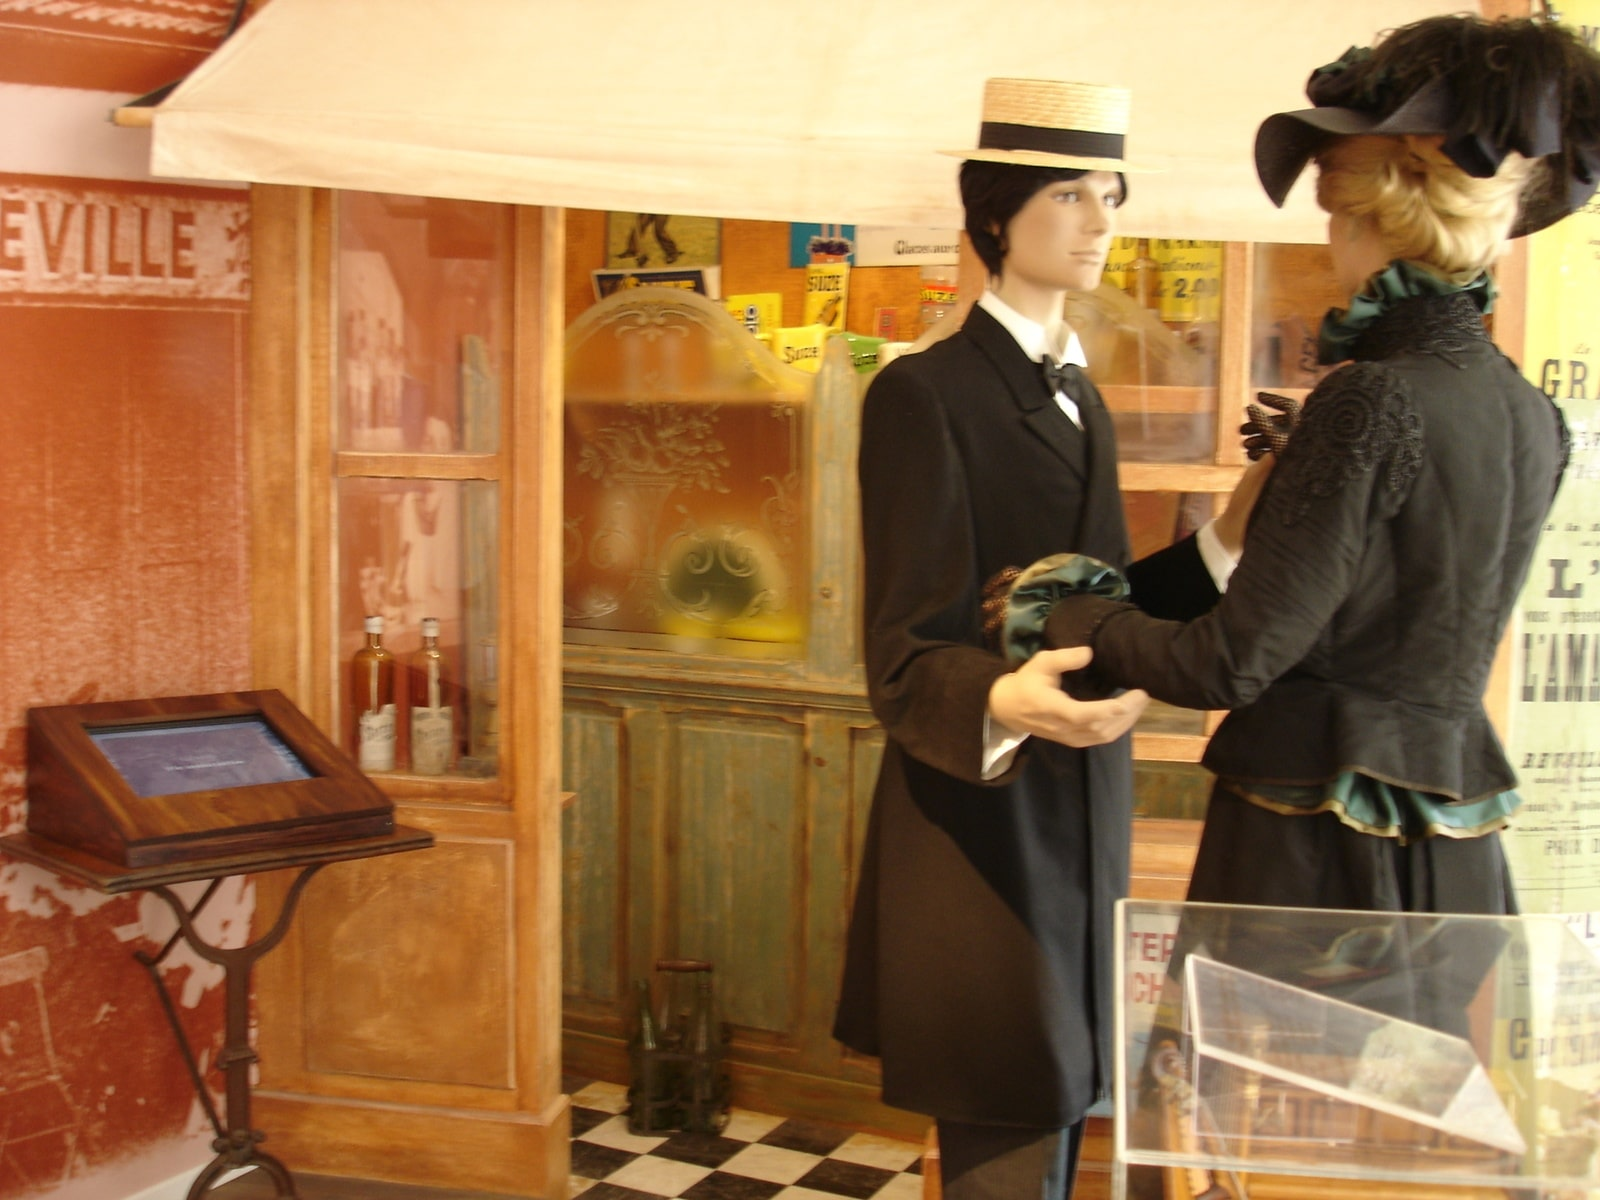 Musee-Maisons-Alfort-8